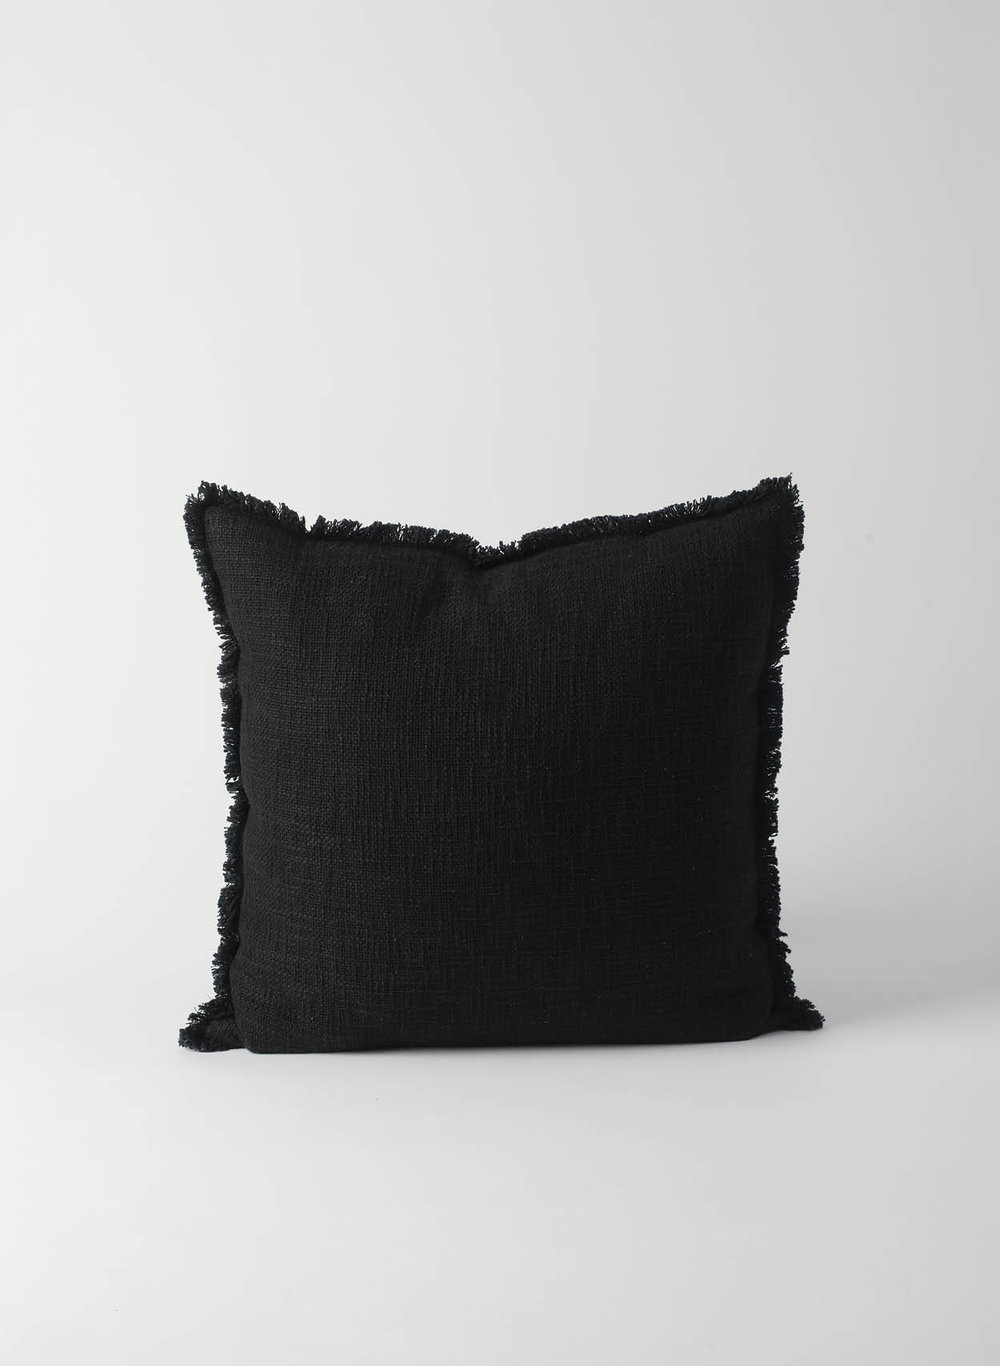 No.5 Fringed Cushion Cover $69.90